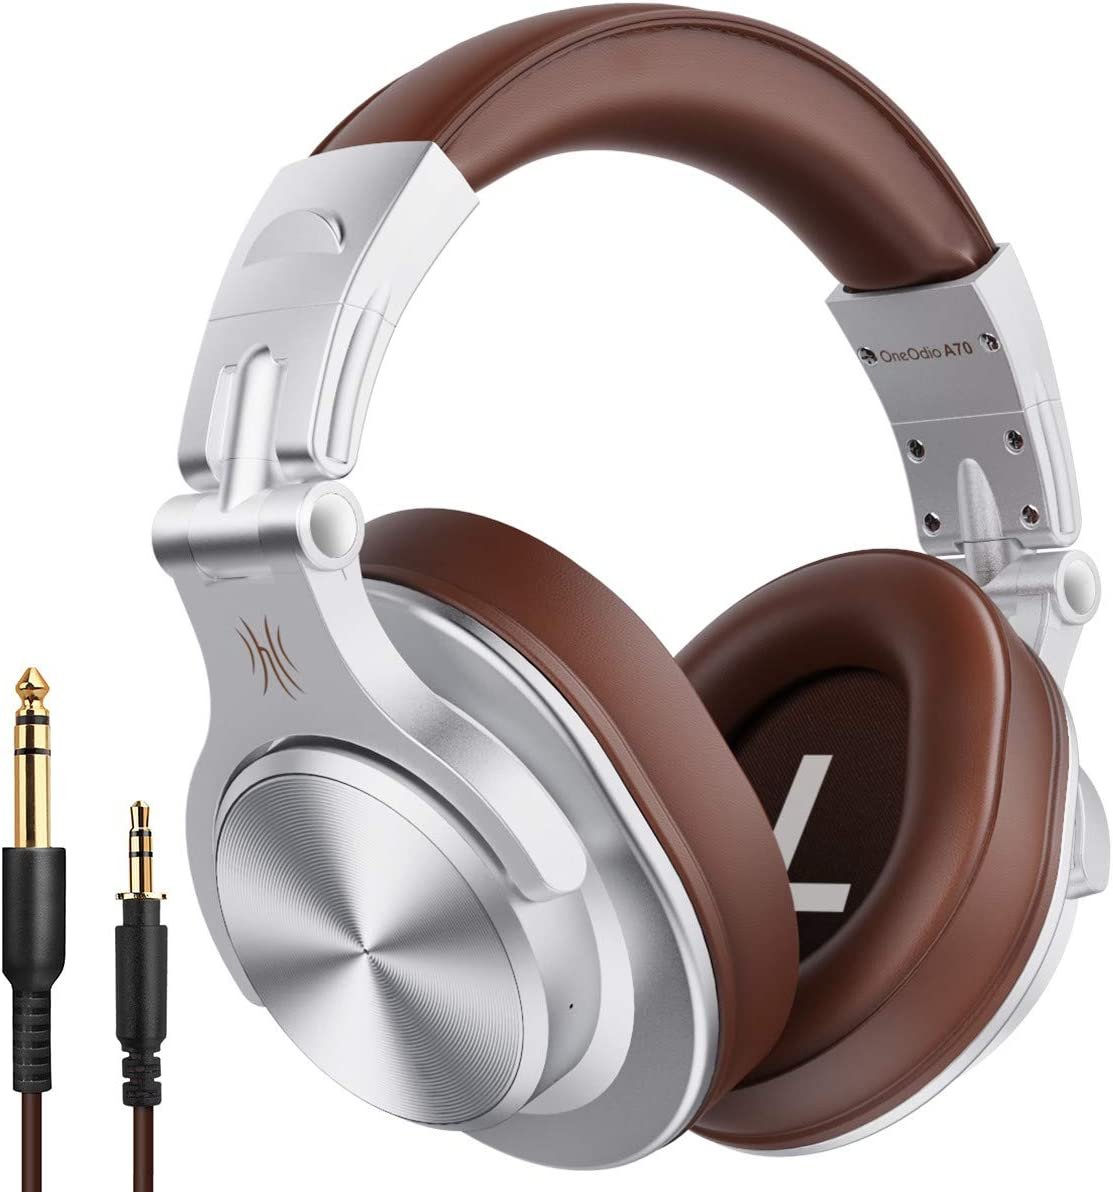 Professional Adapter-Free Monitor Recording /& Mixing Headphones with Stereo Sound for Electric Drum Piano Guitar Amp OneOdio A71 Wired Over Ear Headphones Silver Studio Headphones with SharePort